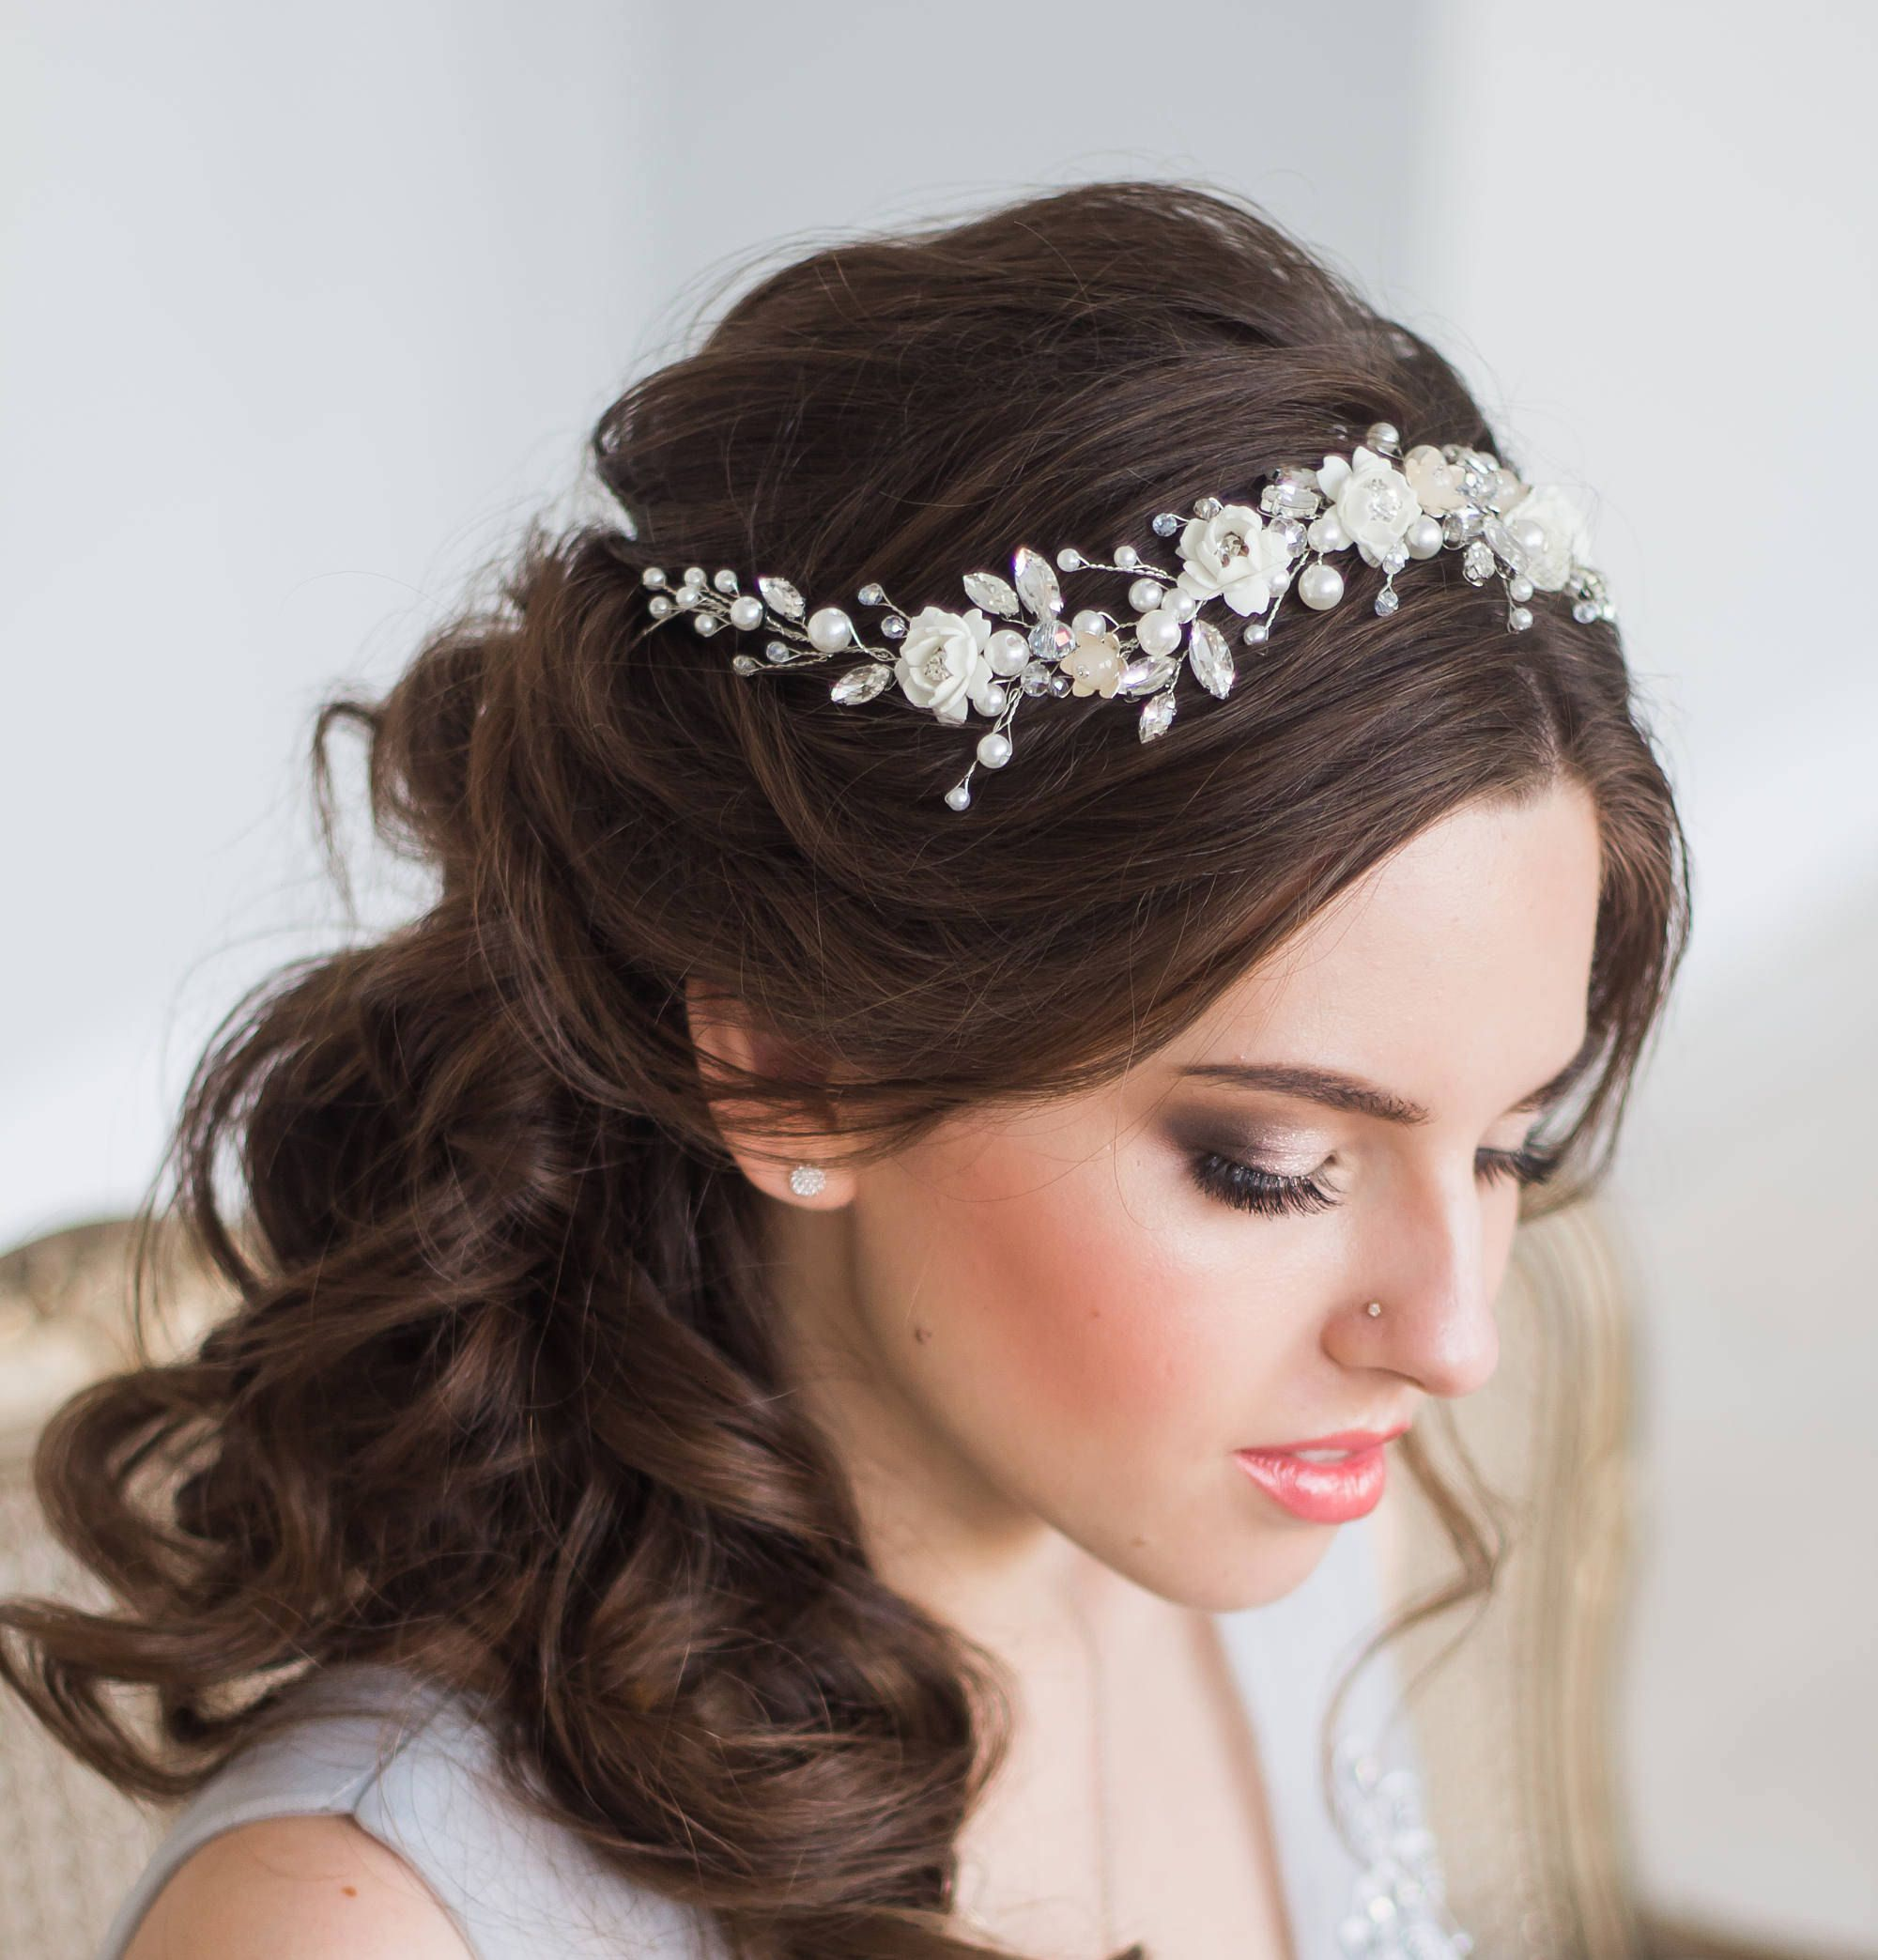 white bridal hair tiara ♥ length: about 11.8 inches (30 cm) ♥ made